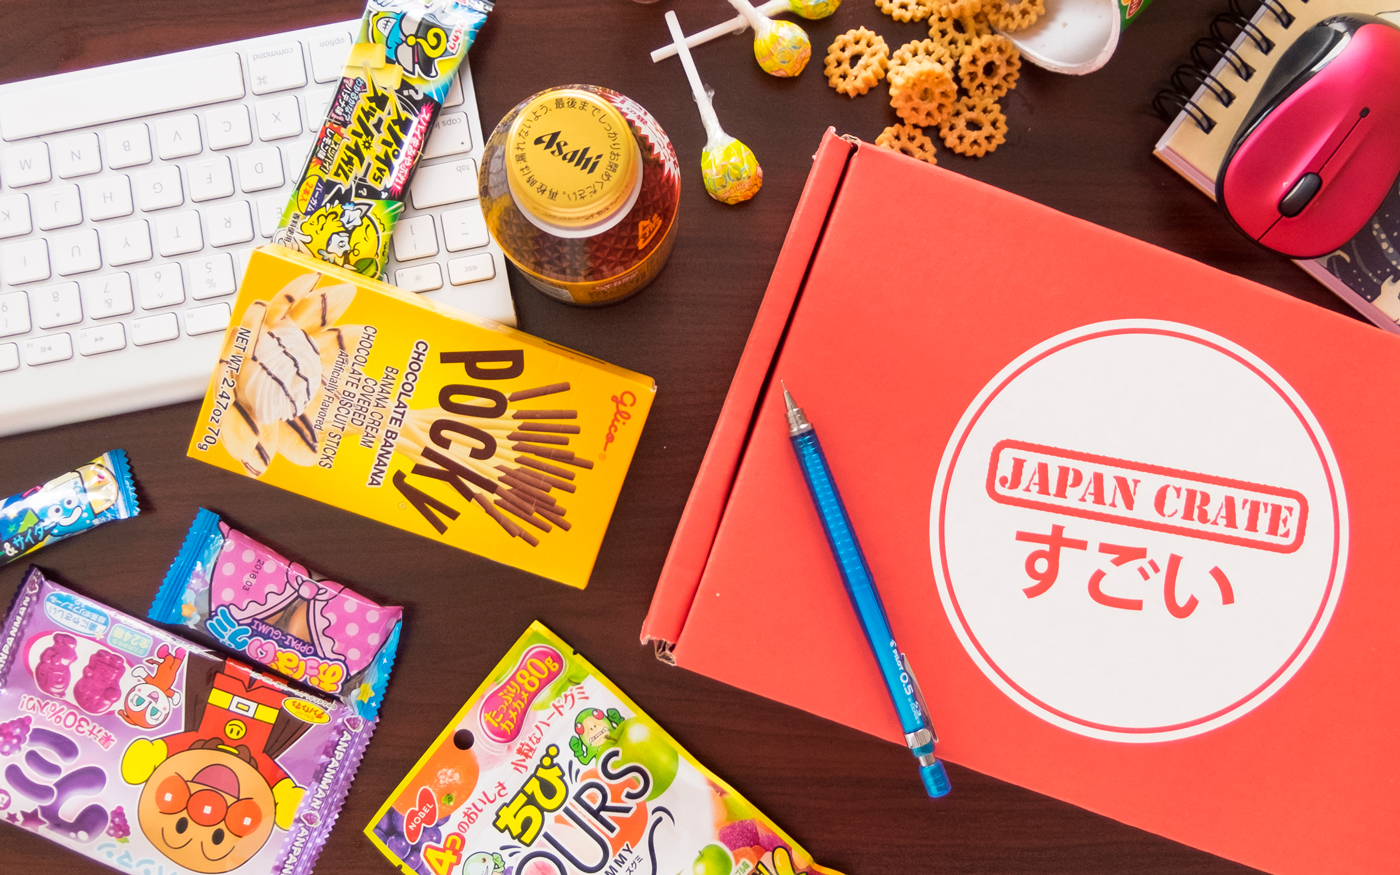 Japan Crate candy subscription box